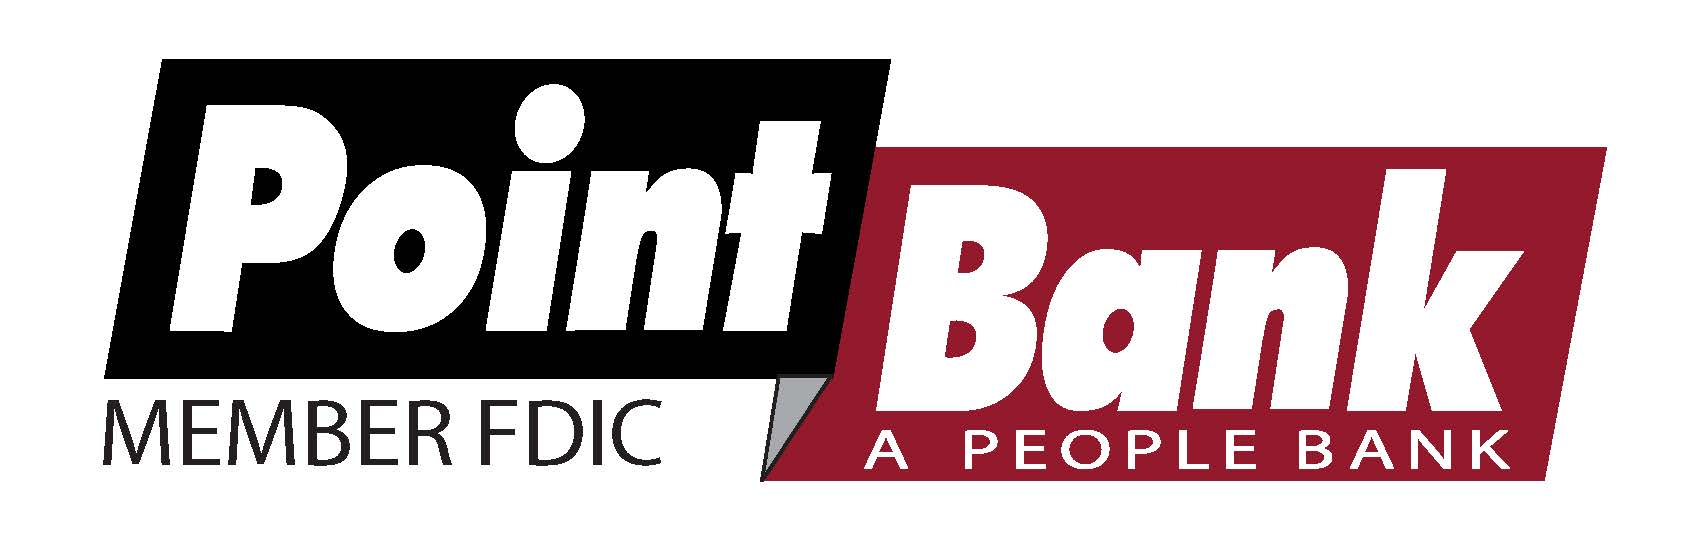 POINTBANK_PeopleBank_bigFDIC.jpg